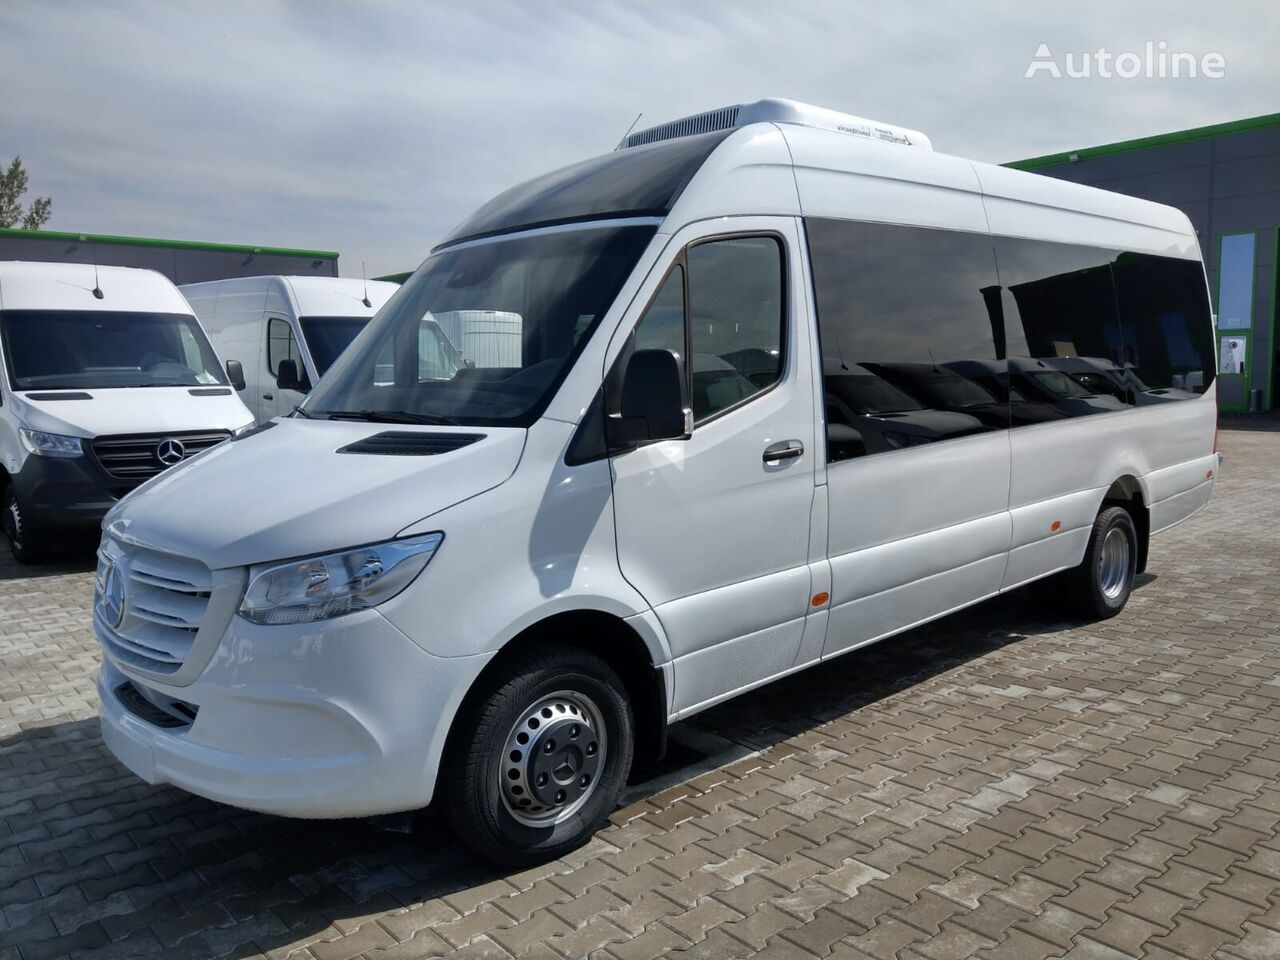 new MERCEDES-BENZ Sprinter 519 907 19+1+1 with COC! Made in Romania passenger van